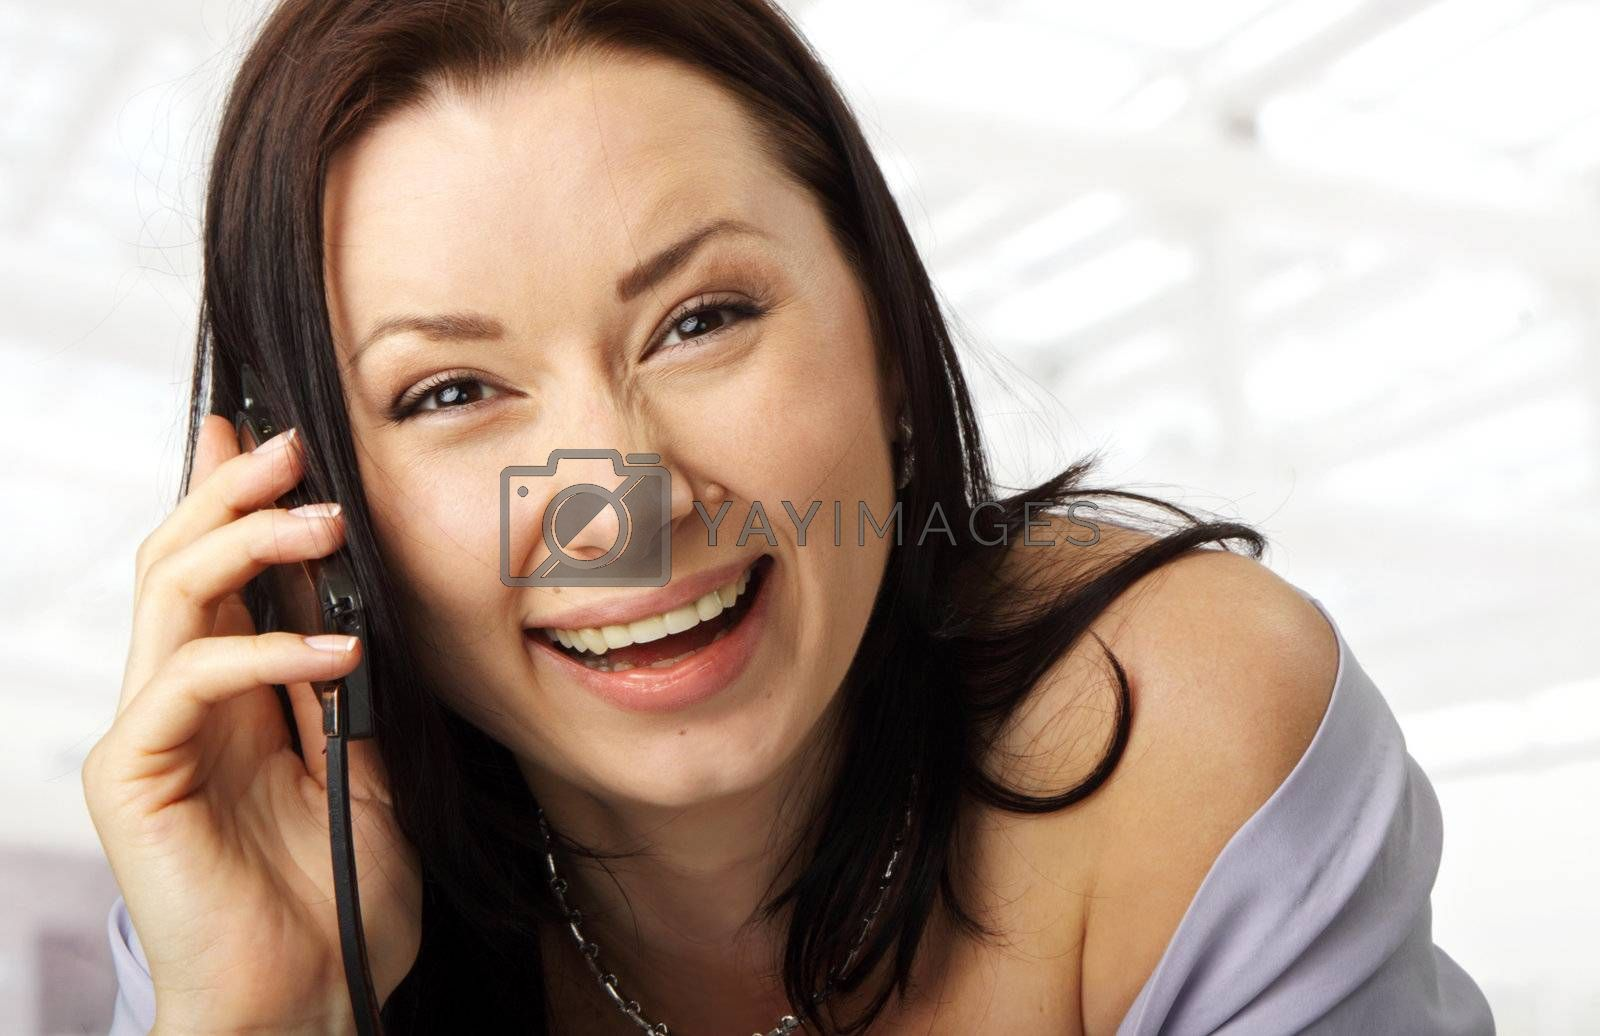 close-up of a happy female face with a cellphone